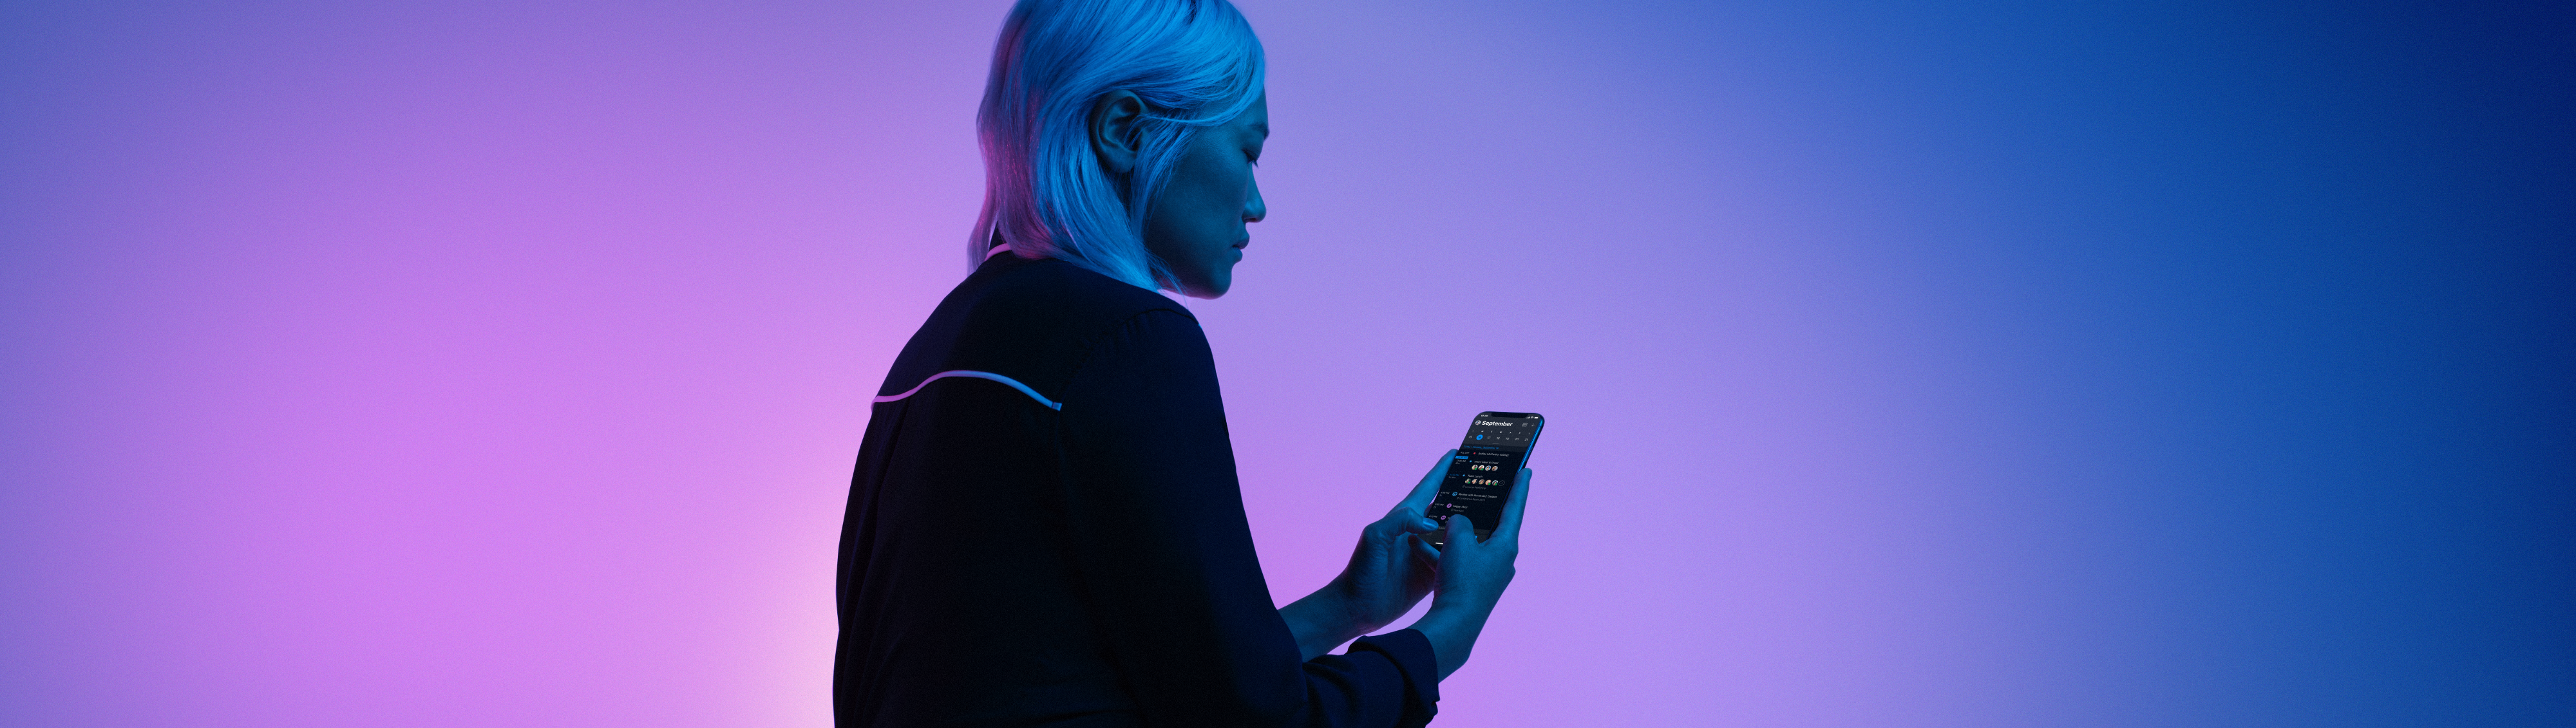 A woman holding a cell phone with Dark Mode enabled.